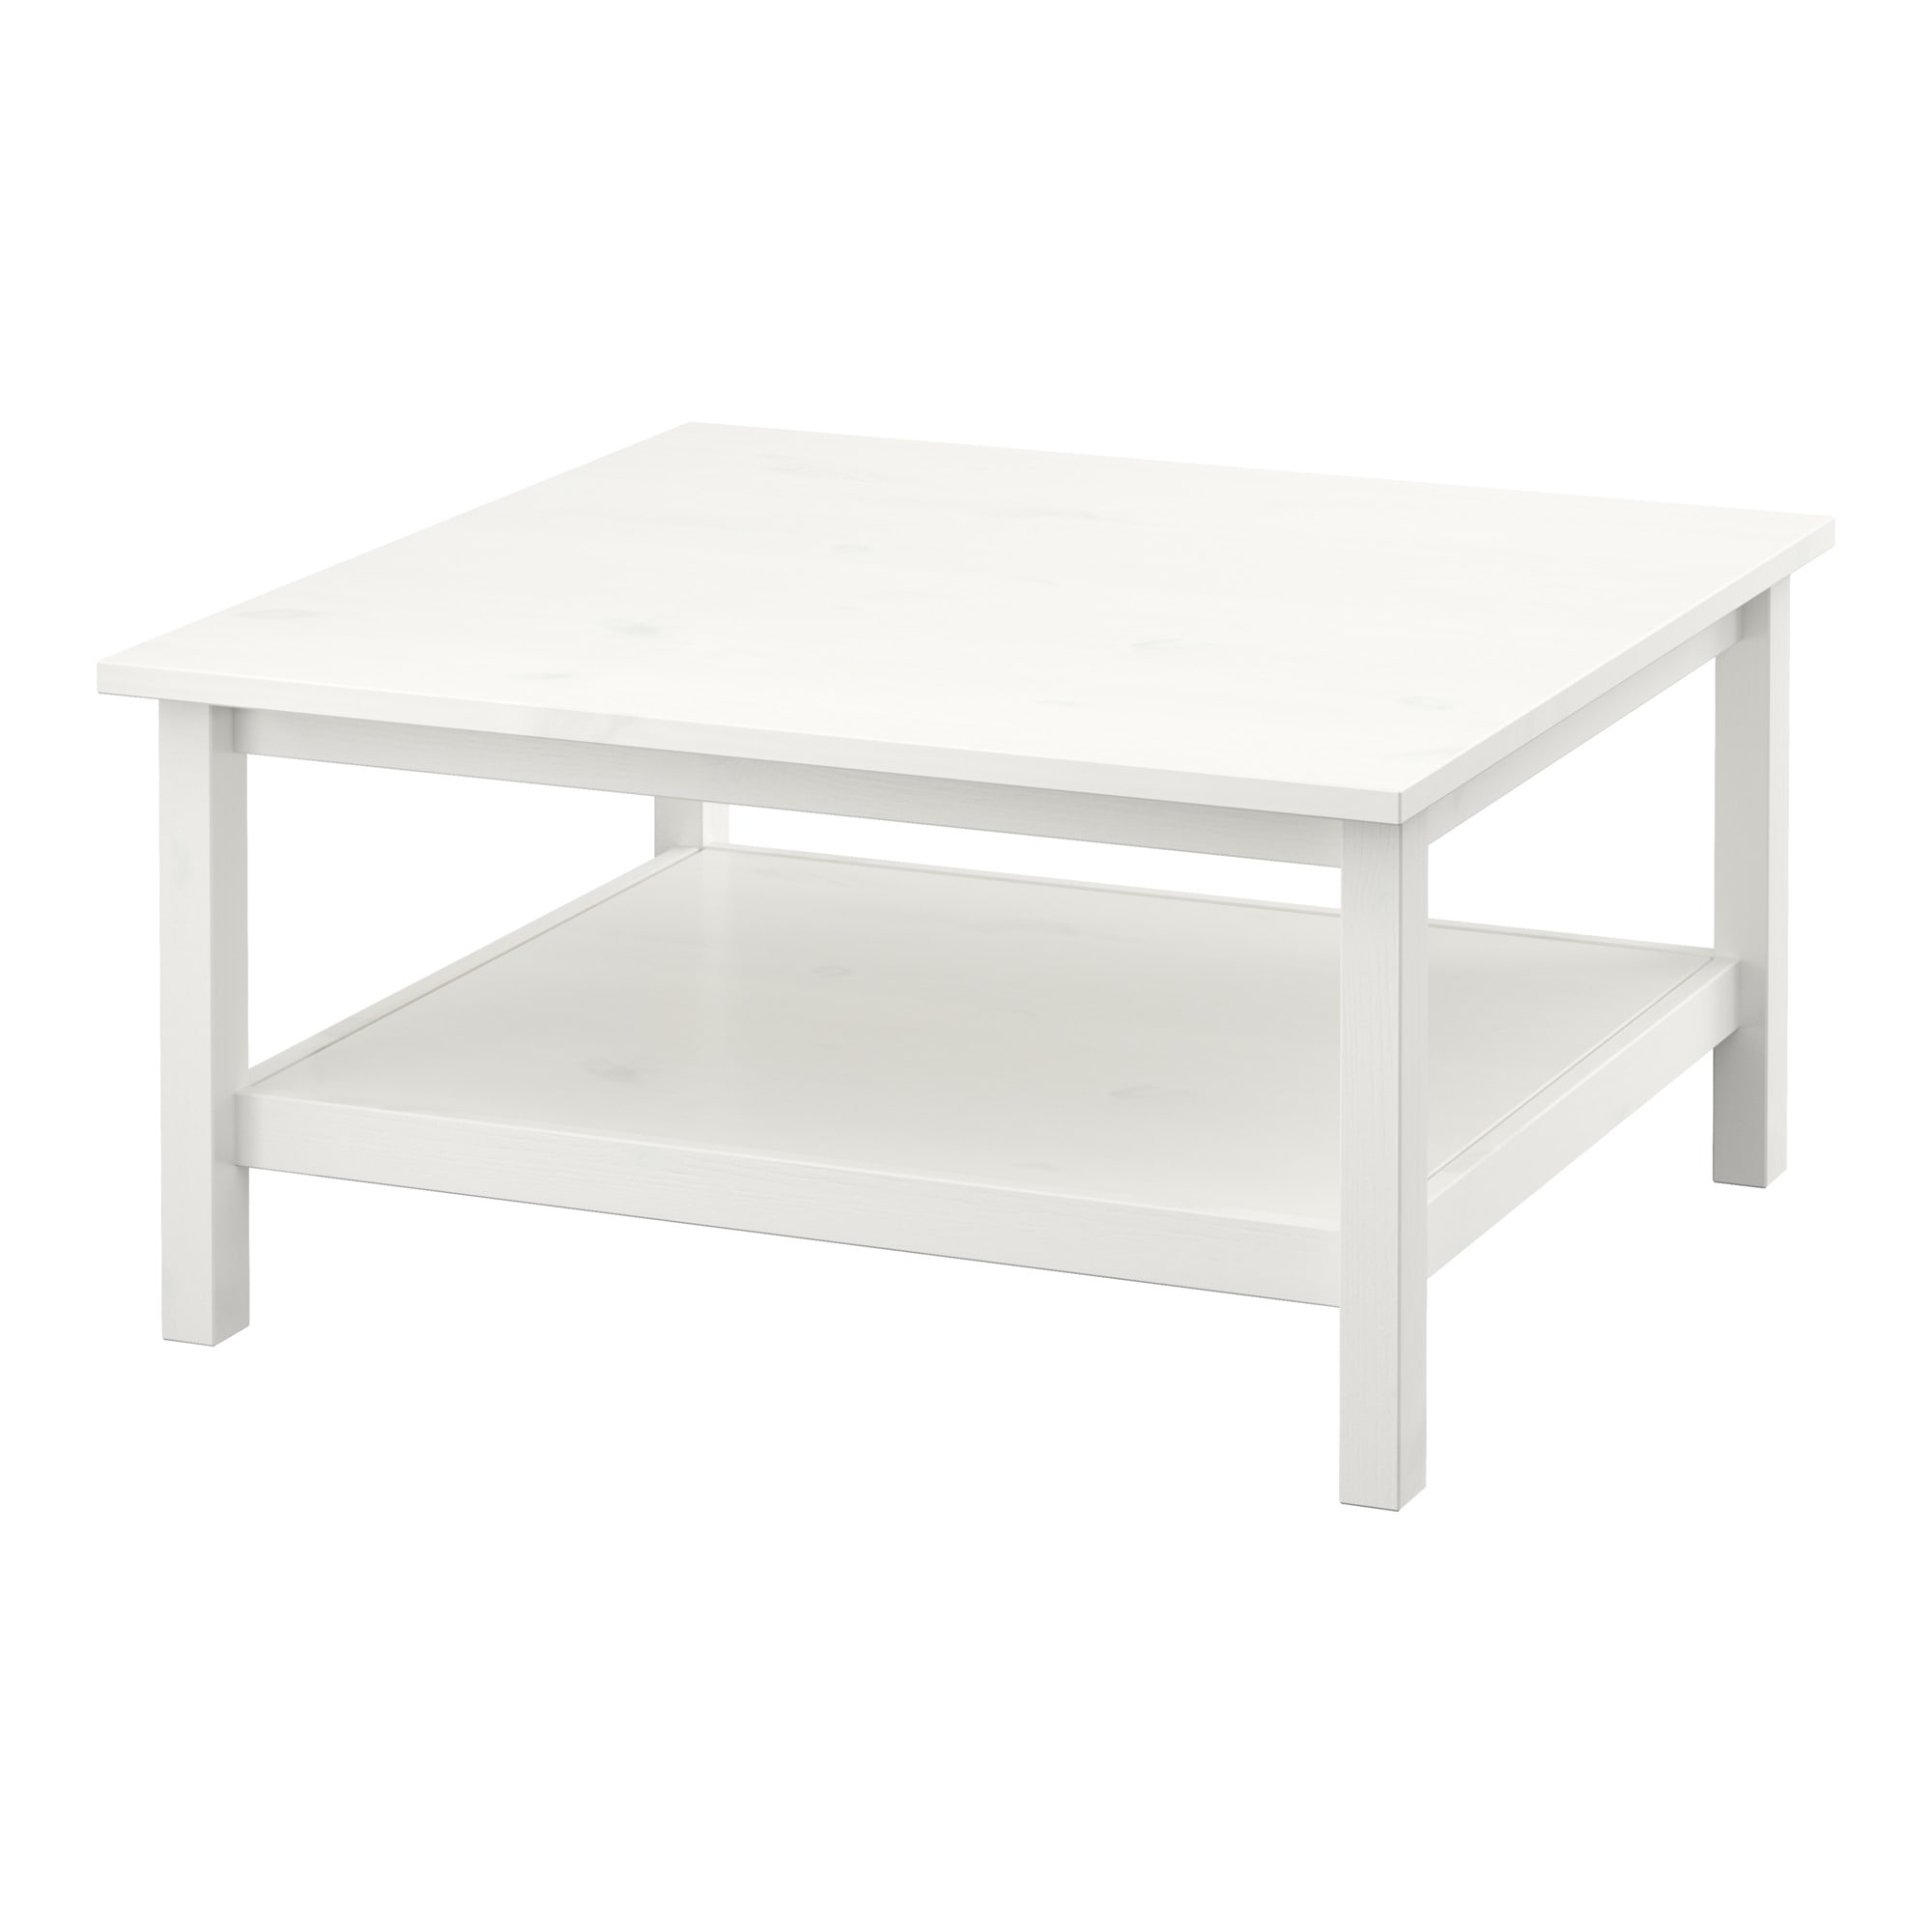 Ikea Coffee Table New in Photo of Great